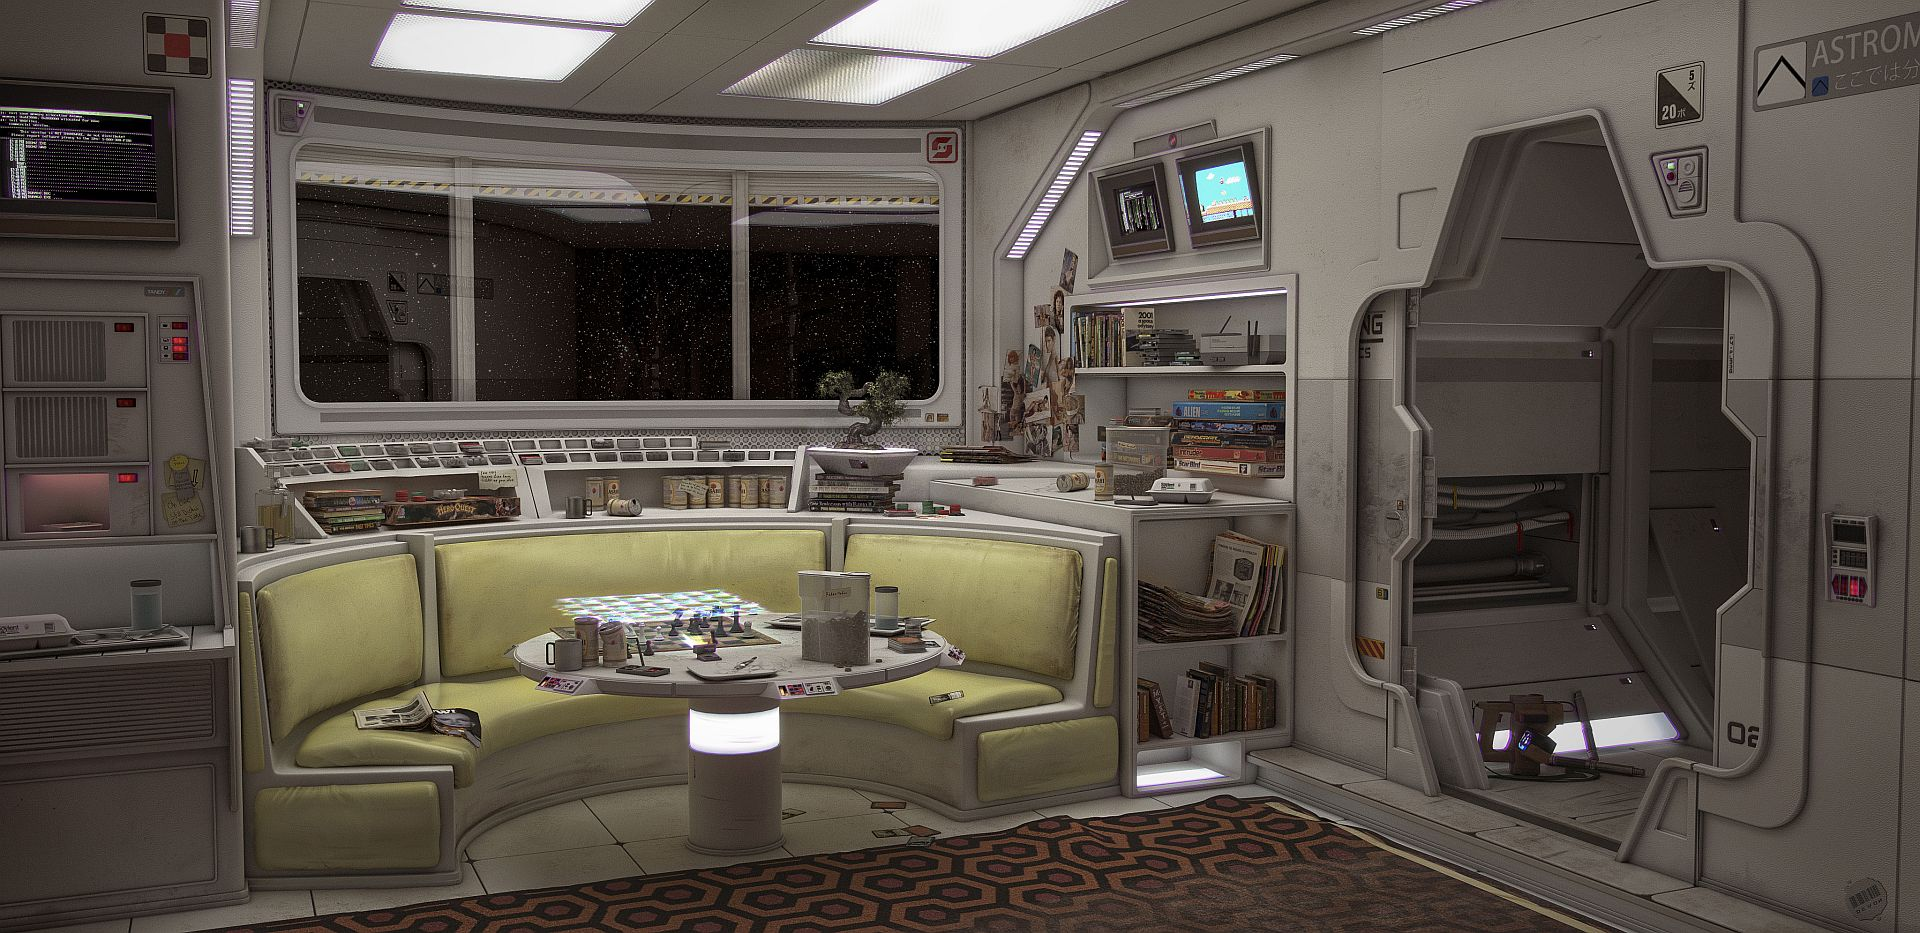 Space Station Rec Room